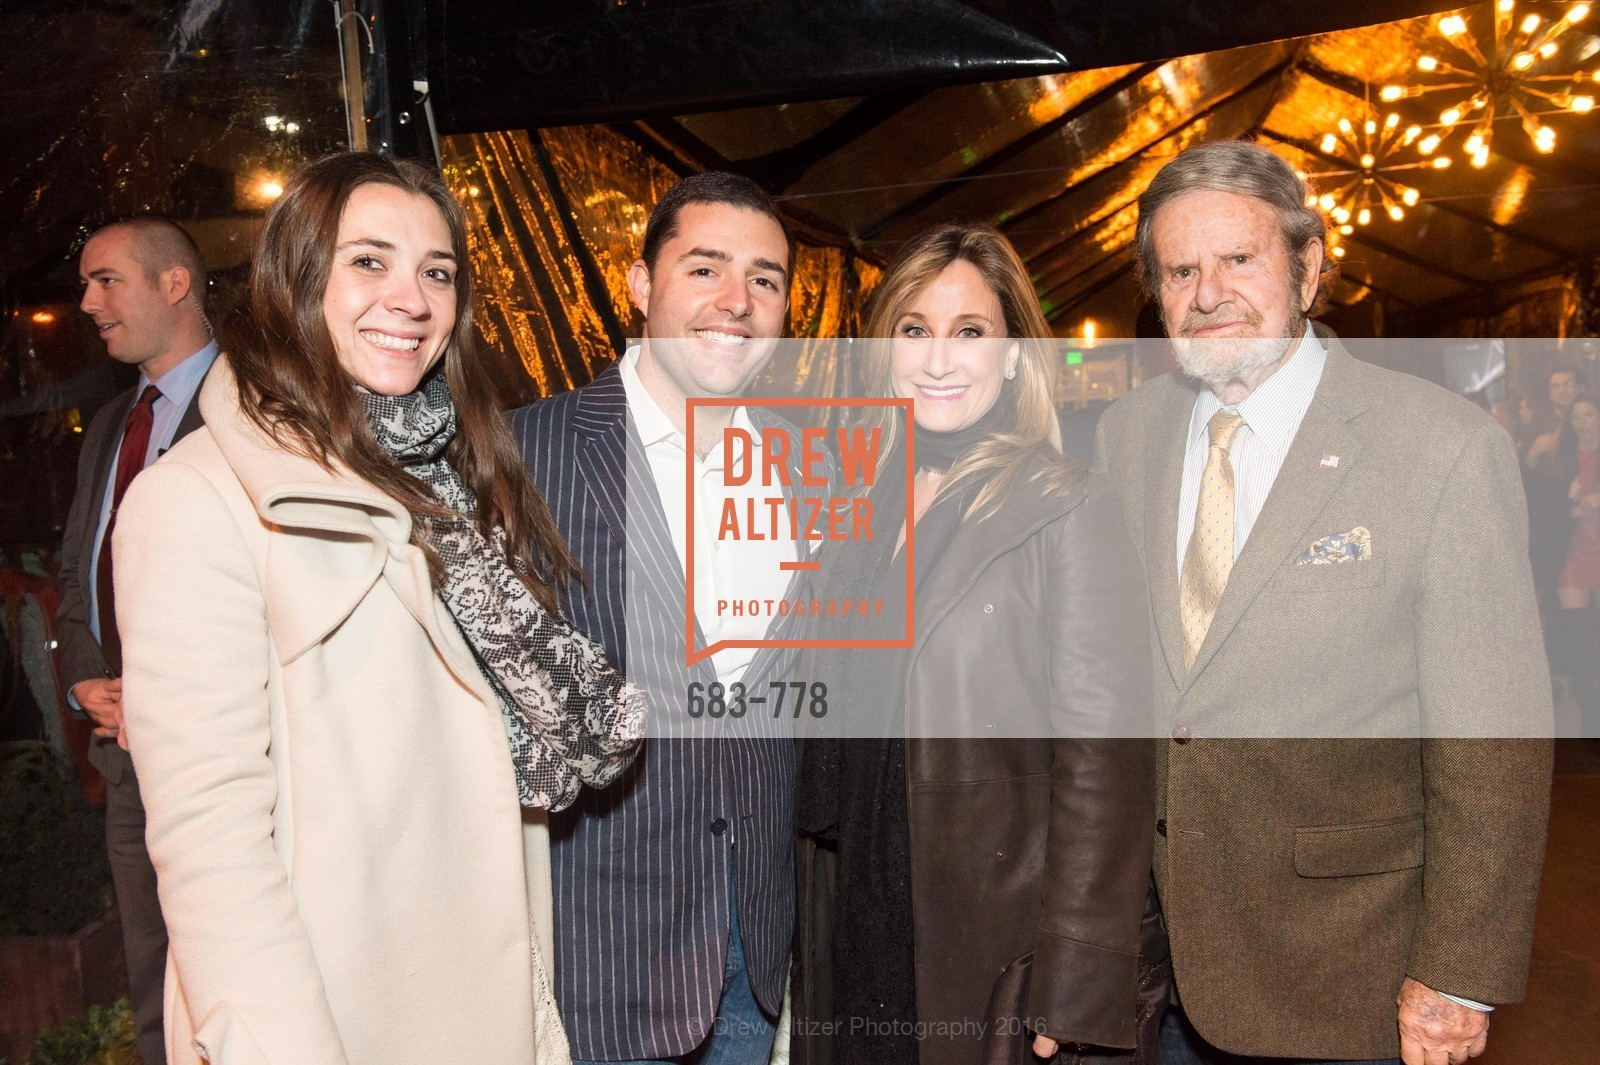 Haley Akchurin, Jed York, Dianne Taube, Tad Taube, The Bay Lights Grand Relighting Celebration, Epic Steakhouse. 369 The Embarcadero, January 29th, 2016,Drew Altizer, Drew Altizer Photography, full-service agency, private events, San Francisco photographer, photographer california